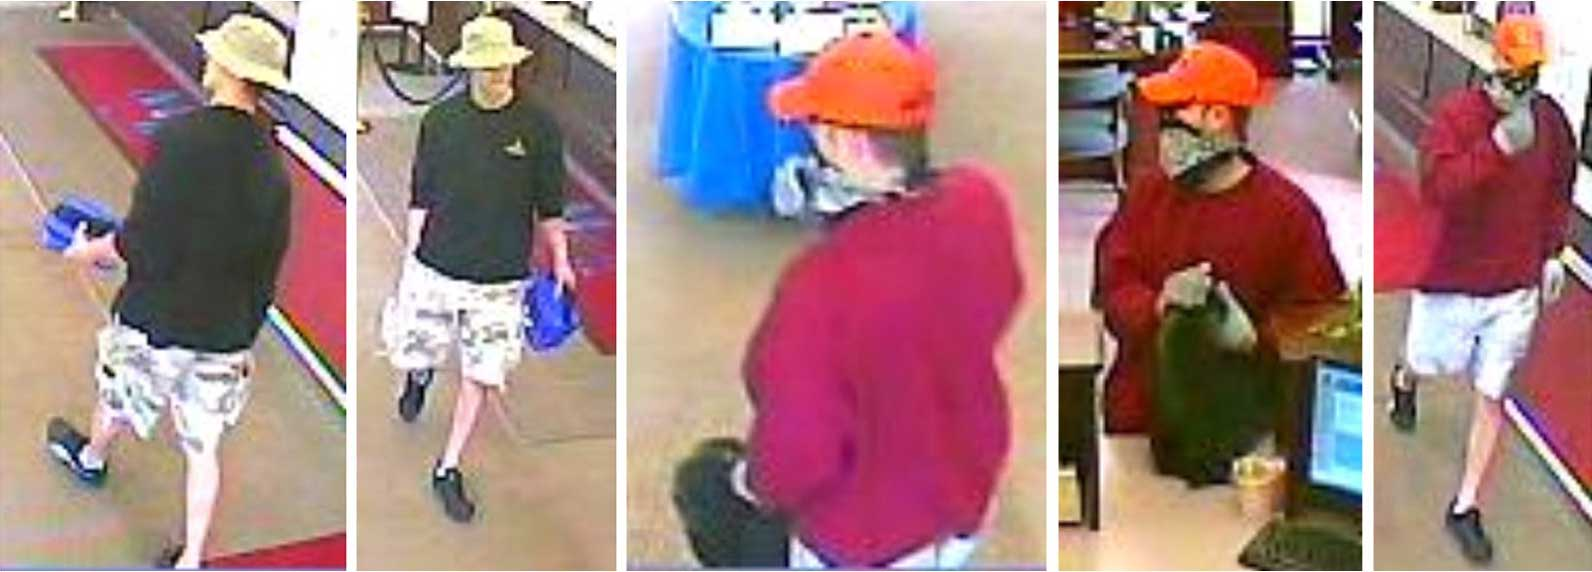 rolling meadows mb financial bank robber caught at